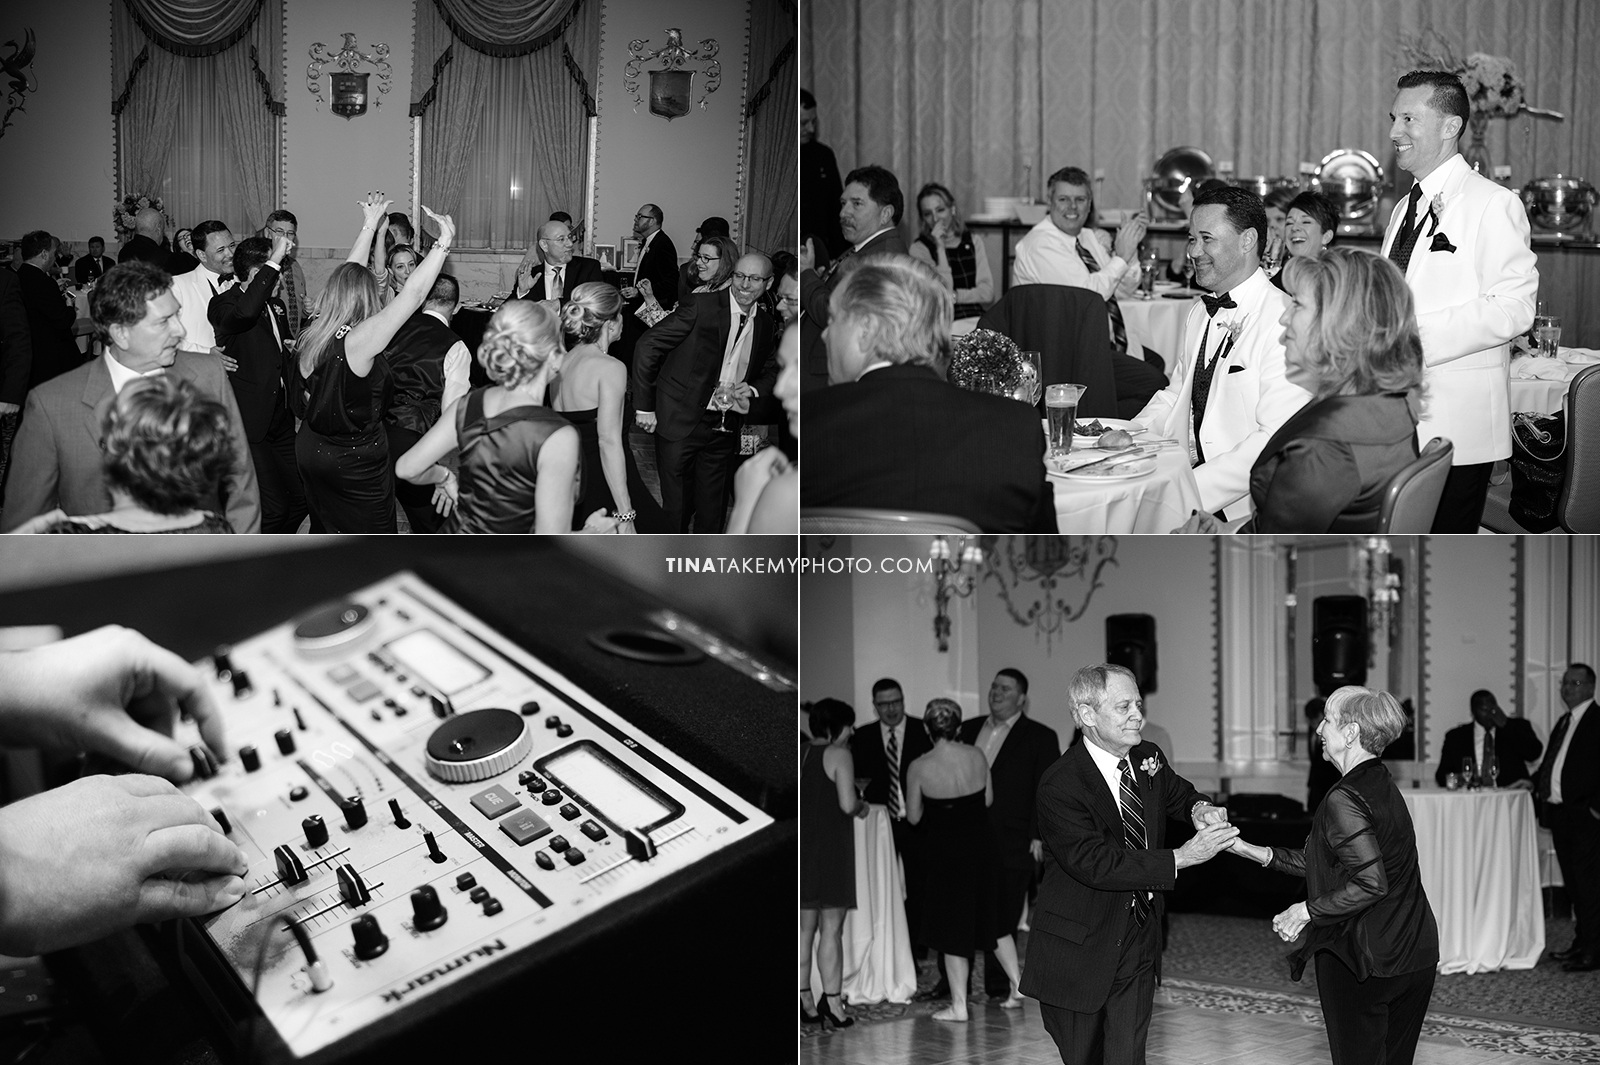 38-Washington-DC-Gay-Same-Sex-Wedding-Men-12-13-14-Mayflower-Hotel-Reception-Dancing-Black-White